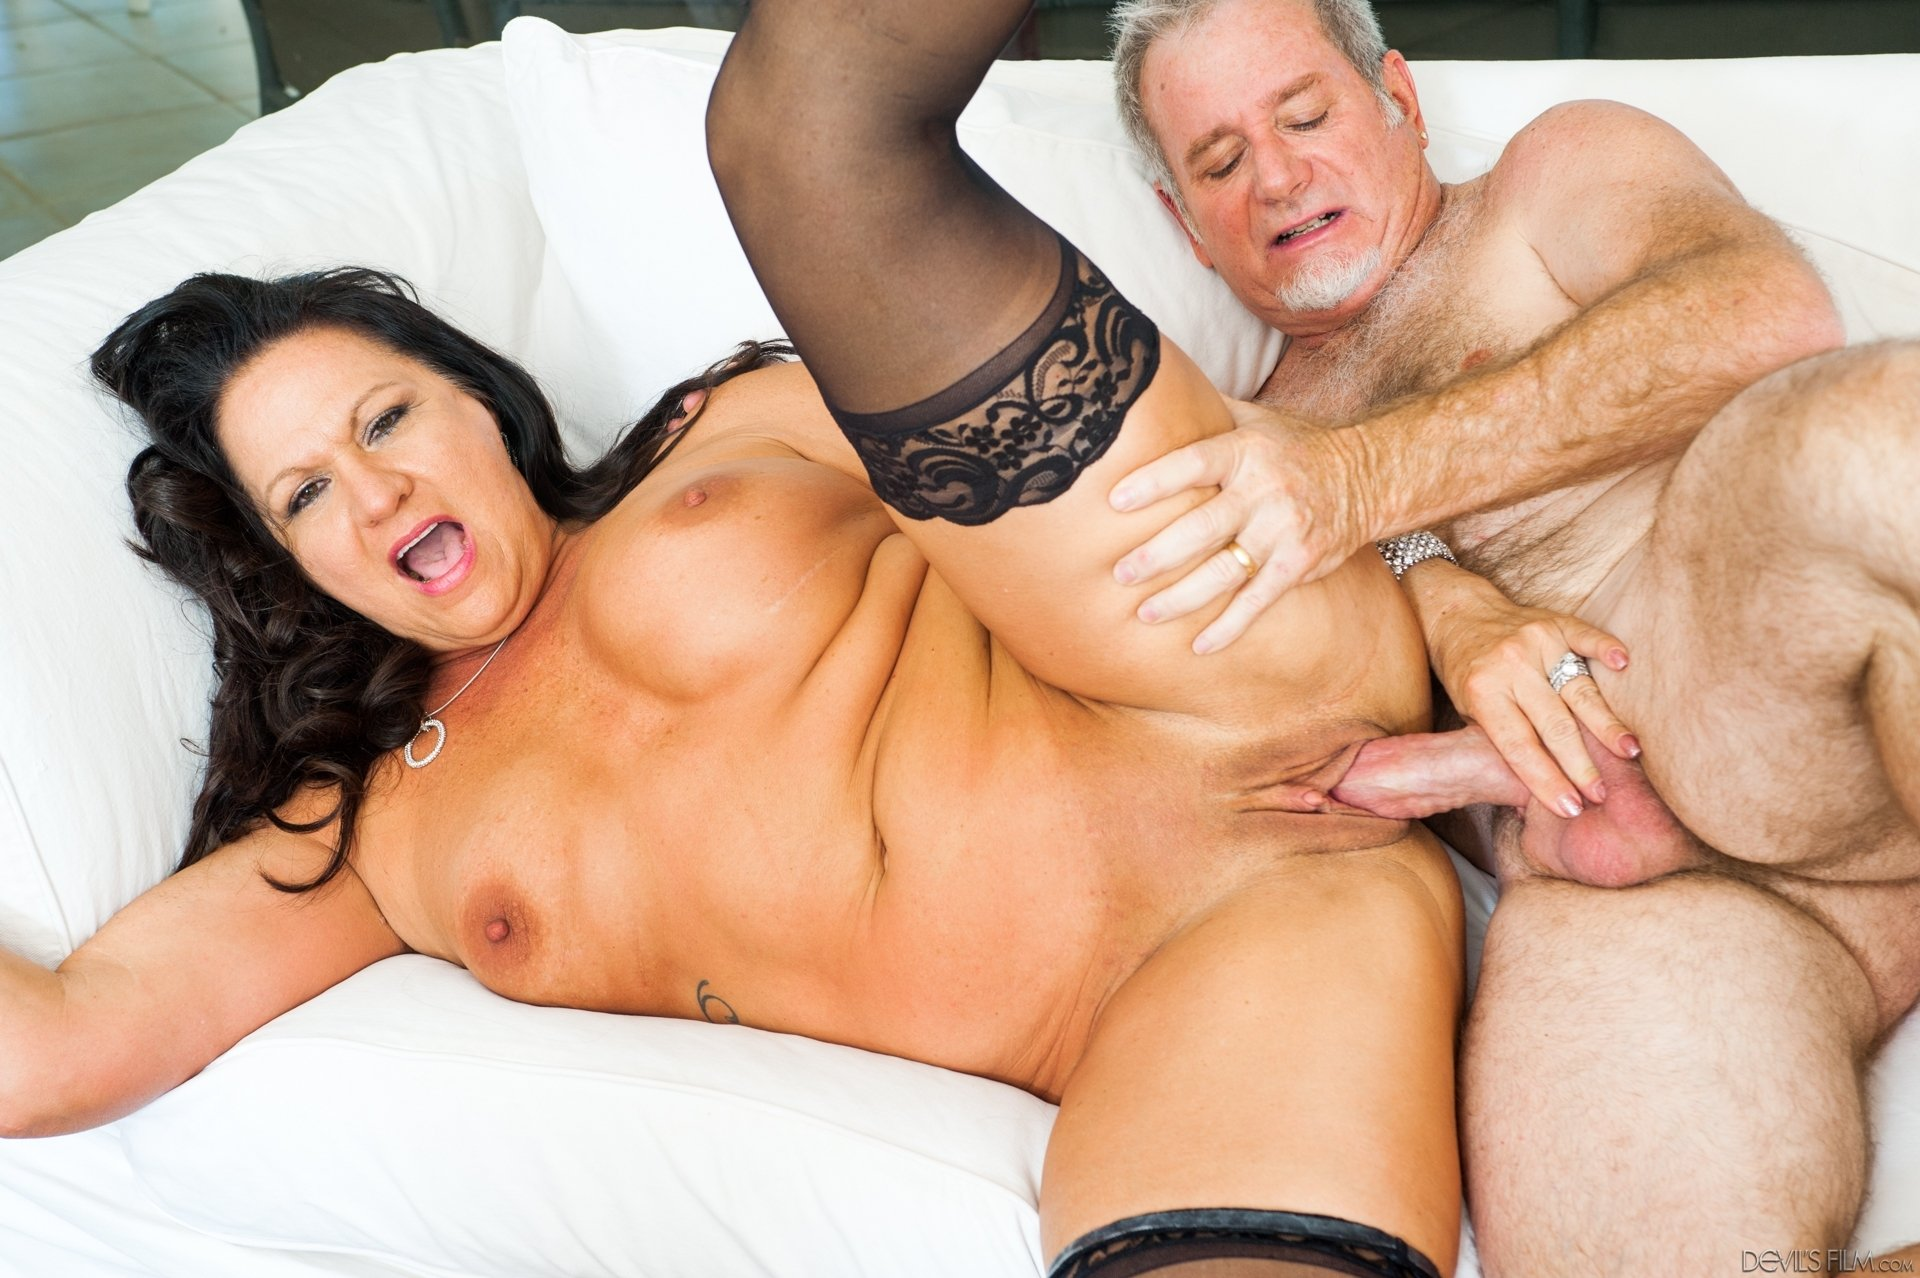 Duty family wife creampie party